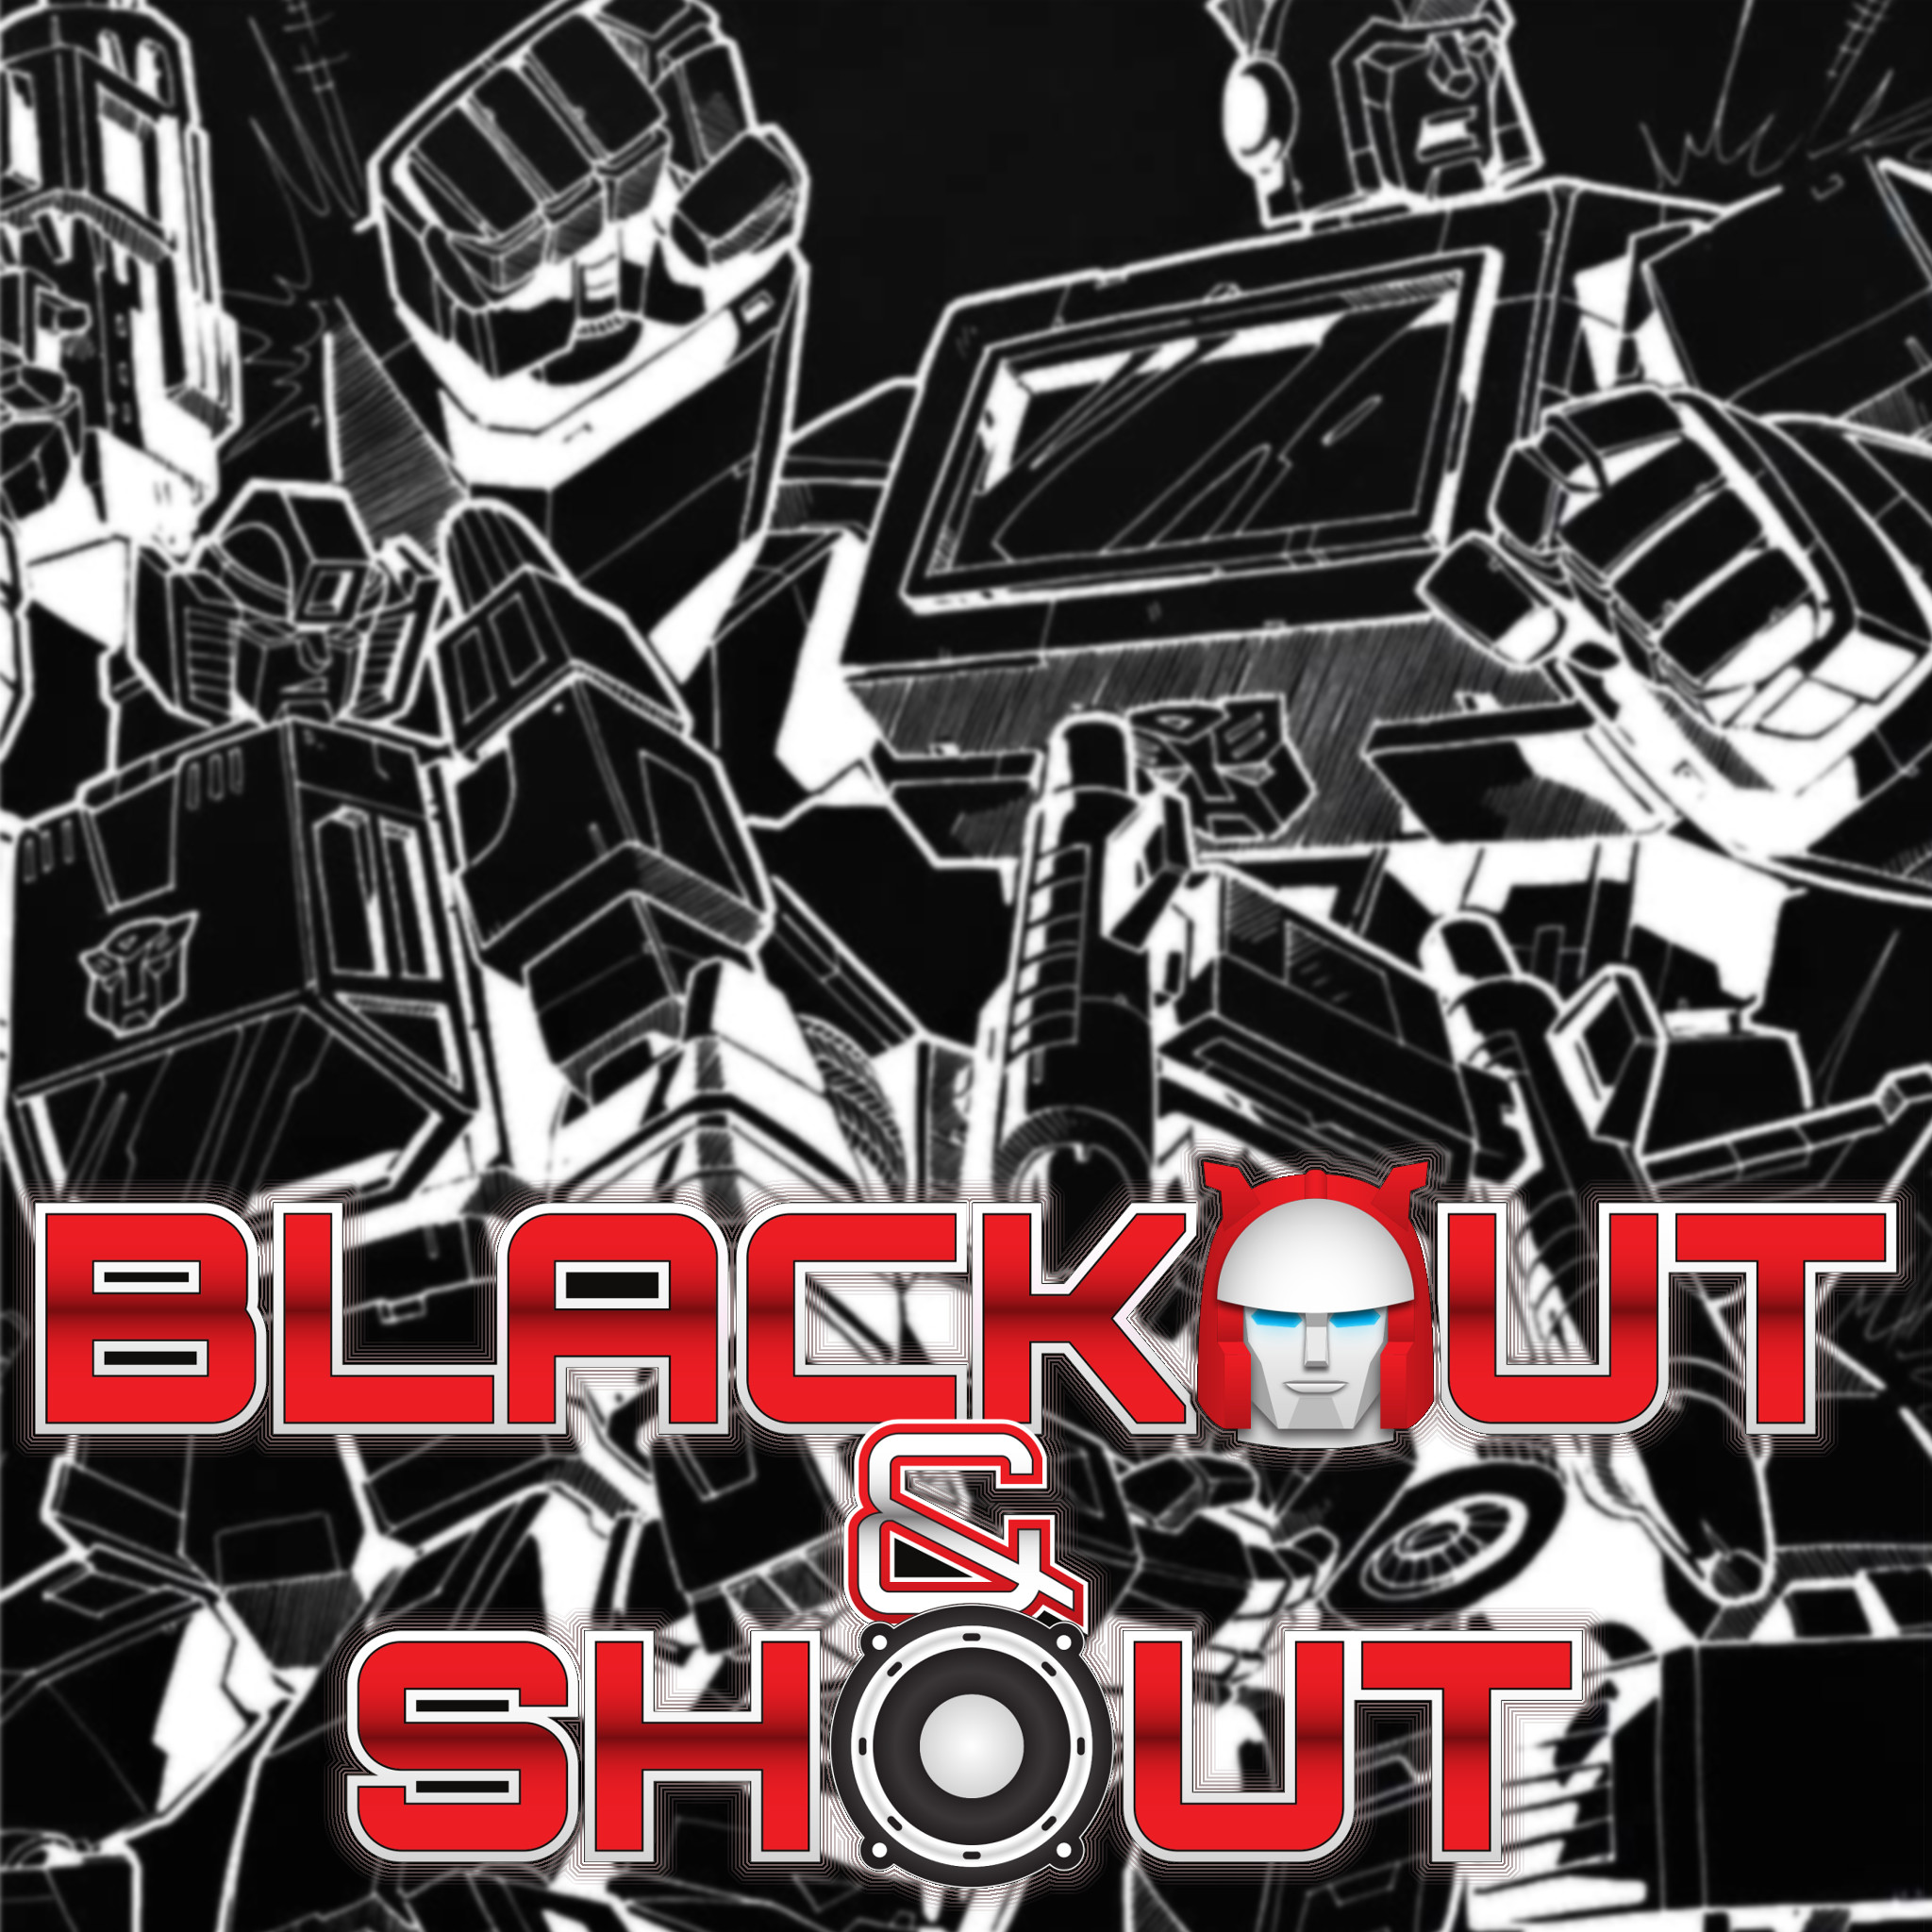 Blackout & Shout - Transformers, TV, Movies, Video Games, and other nerd topics